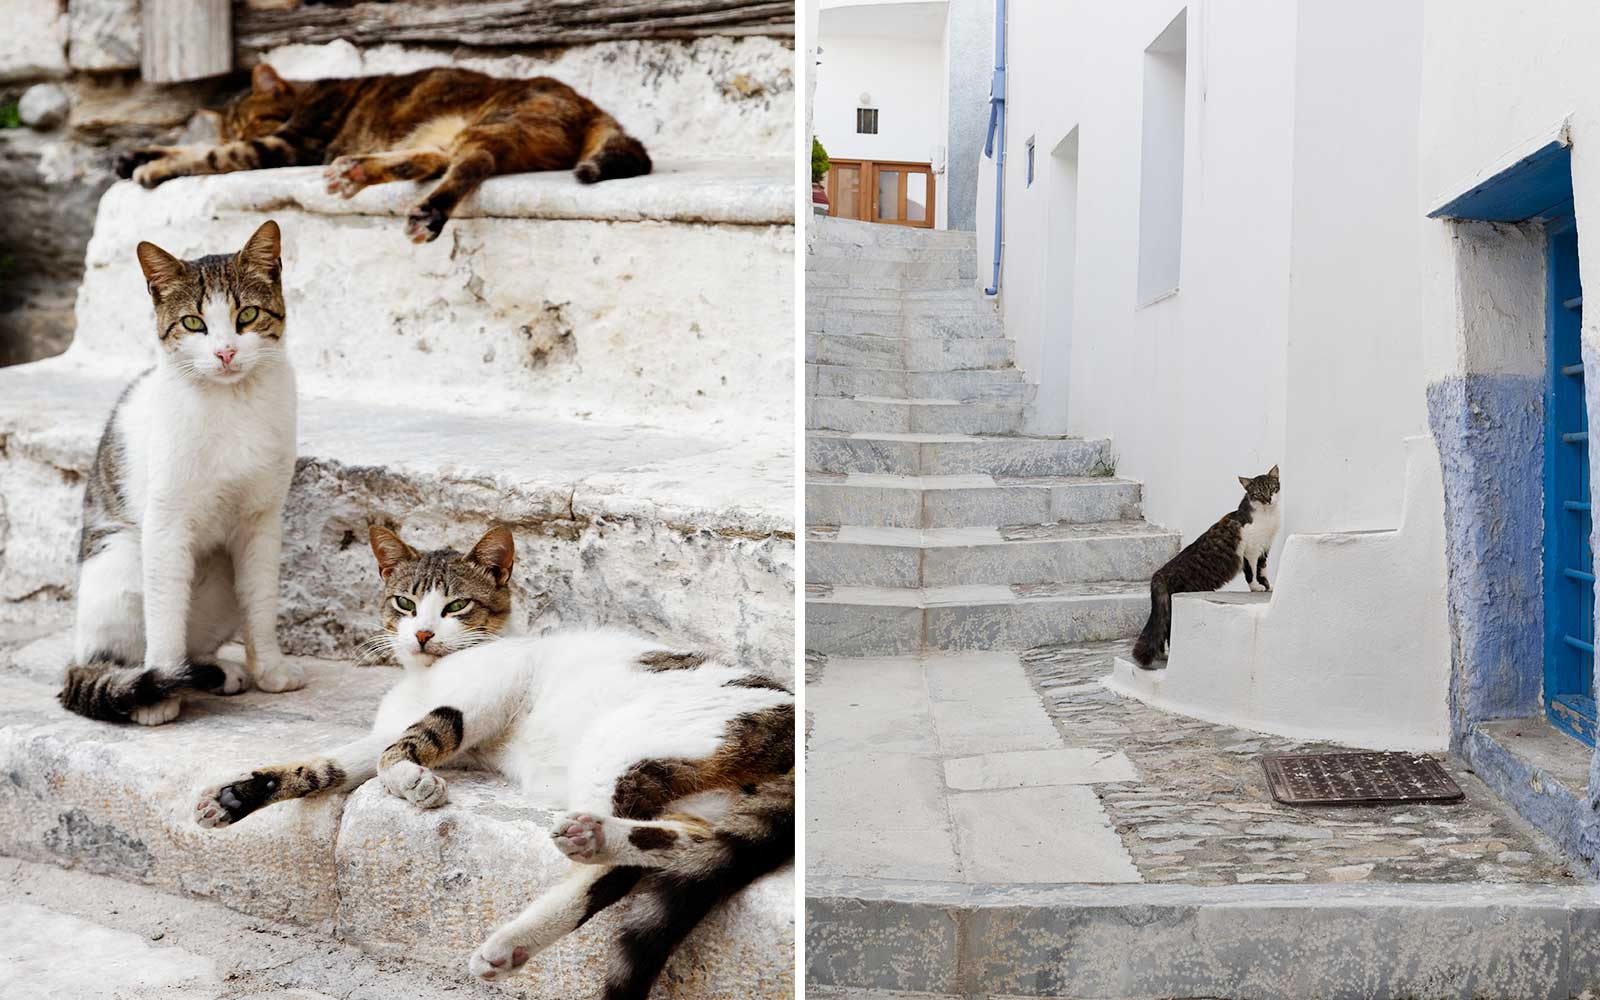 Cats on the island of Syros, in Greece